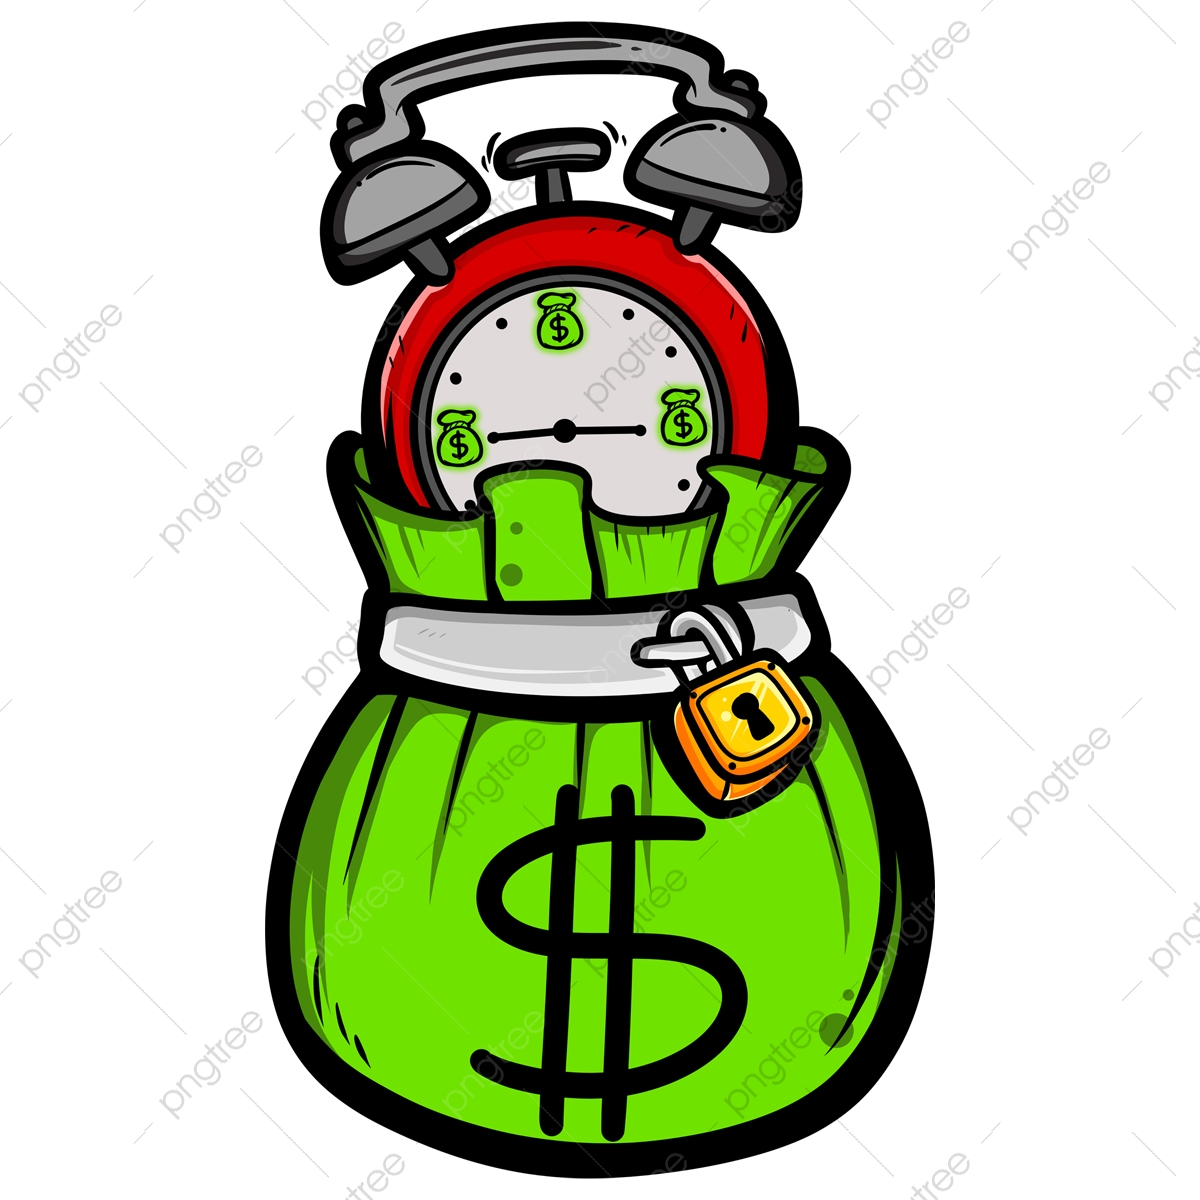 Show Me the Money transparent background PNG cliparts free download    HiClipart